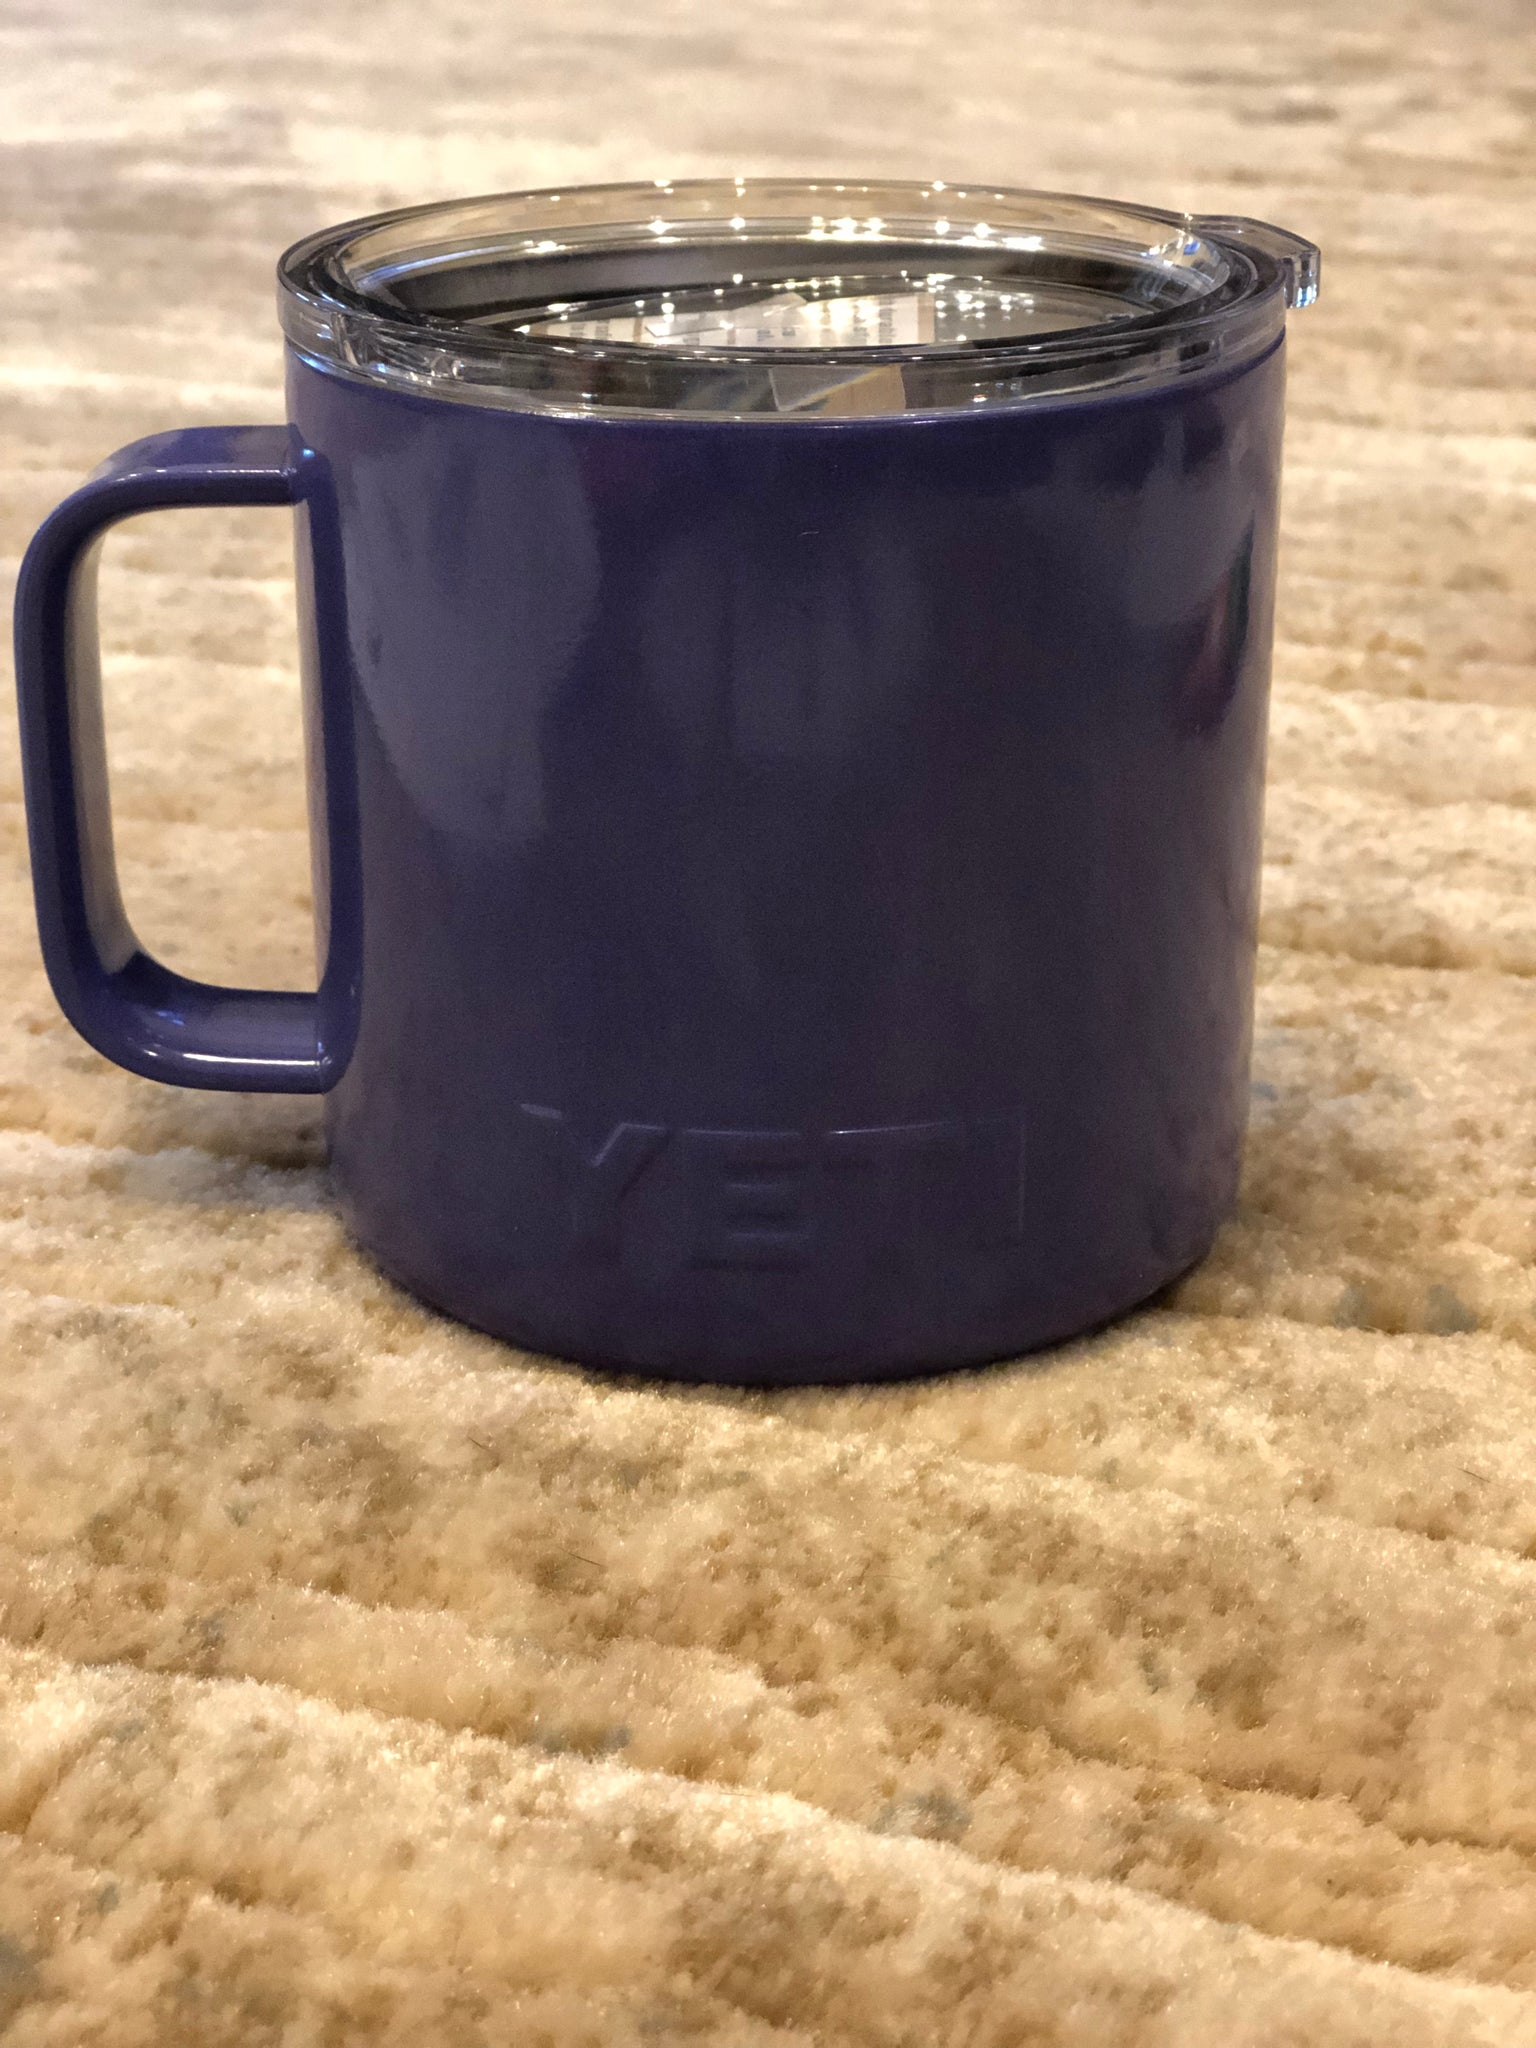 Custom Yeti rambler mug powder coated, white, purple, team